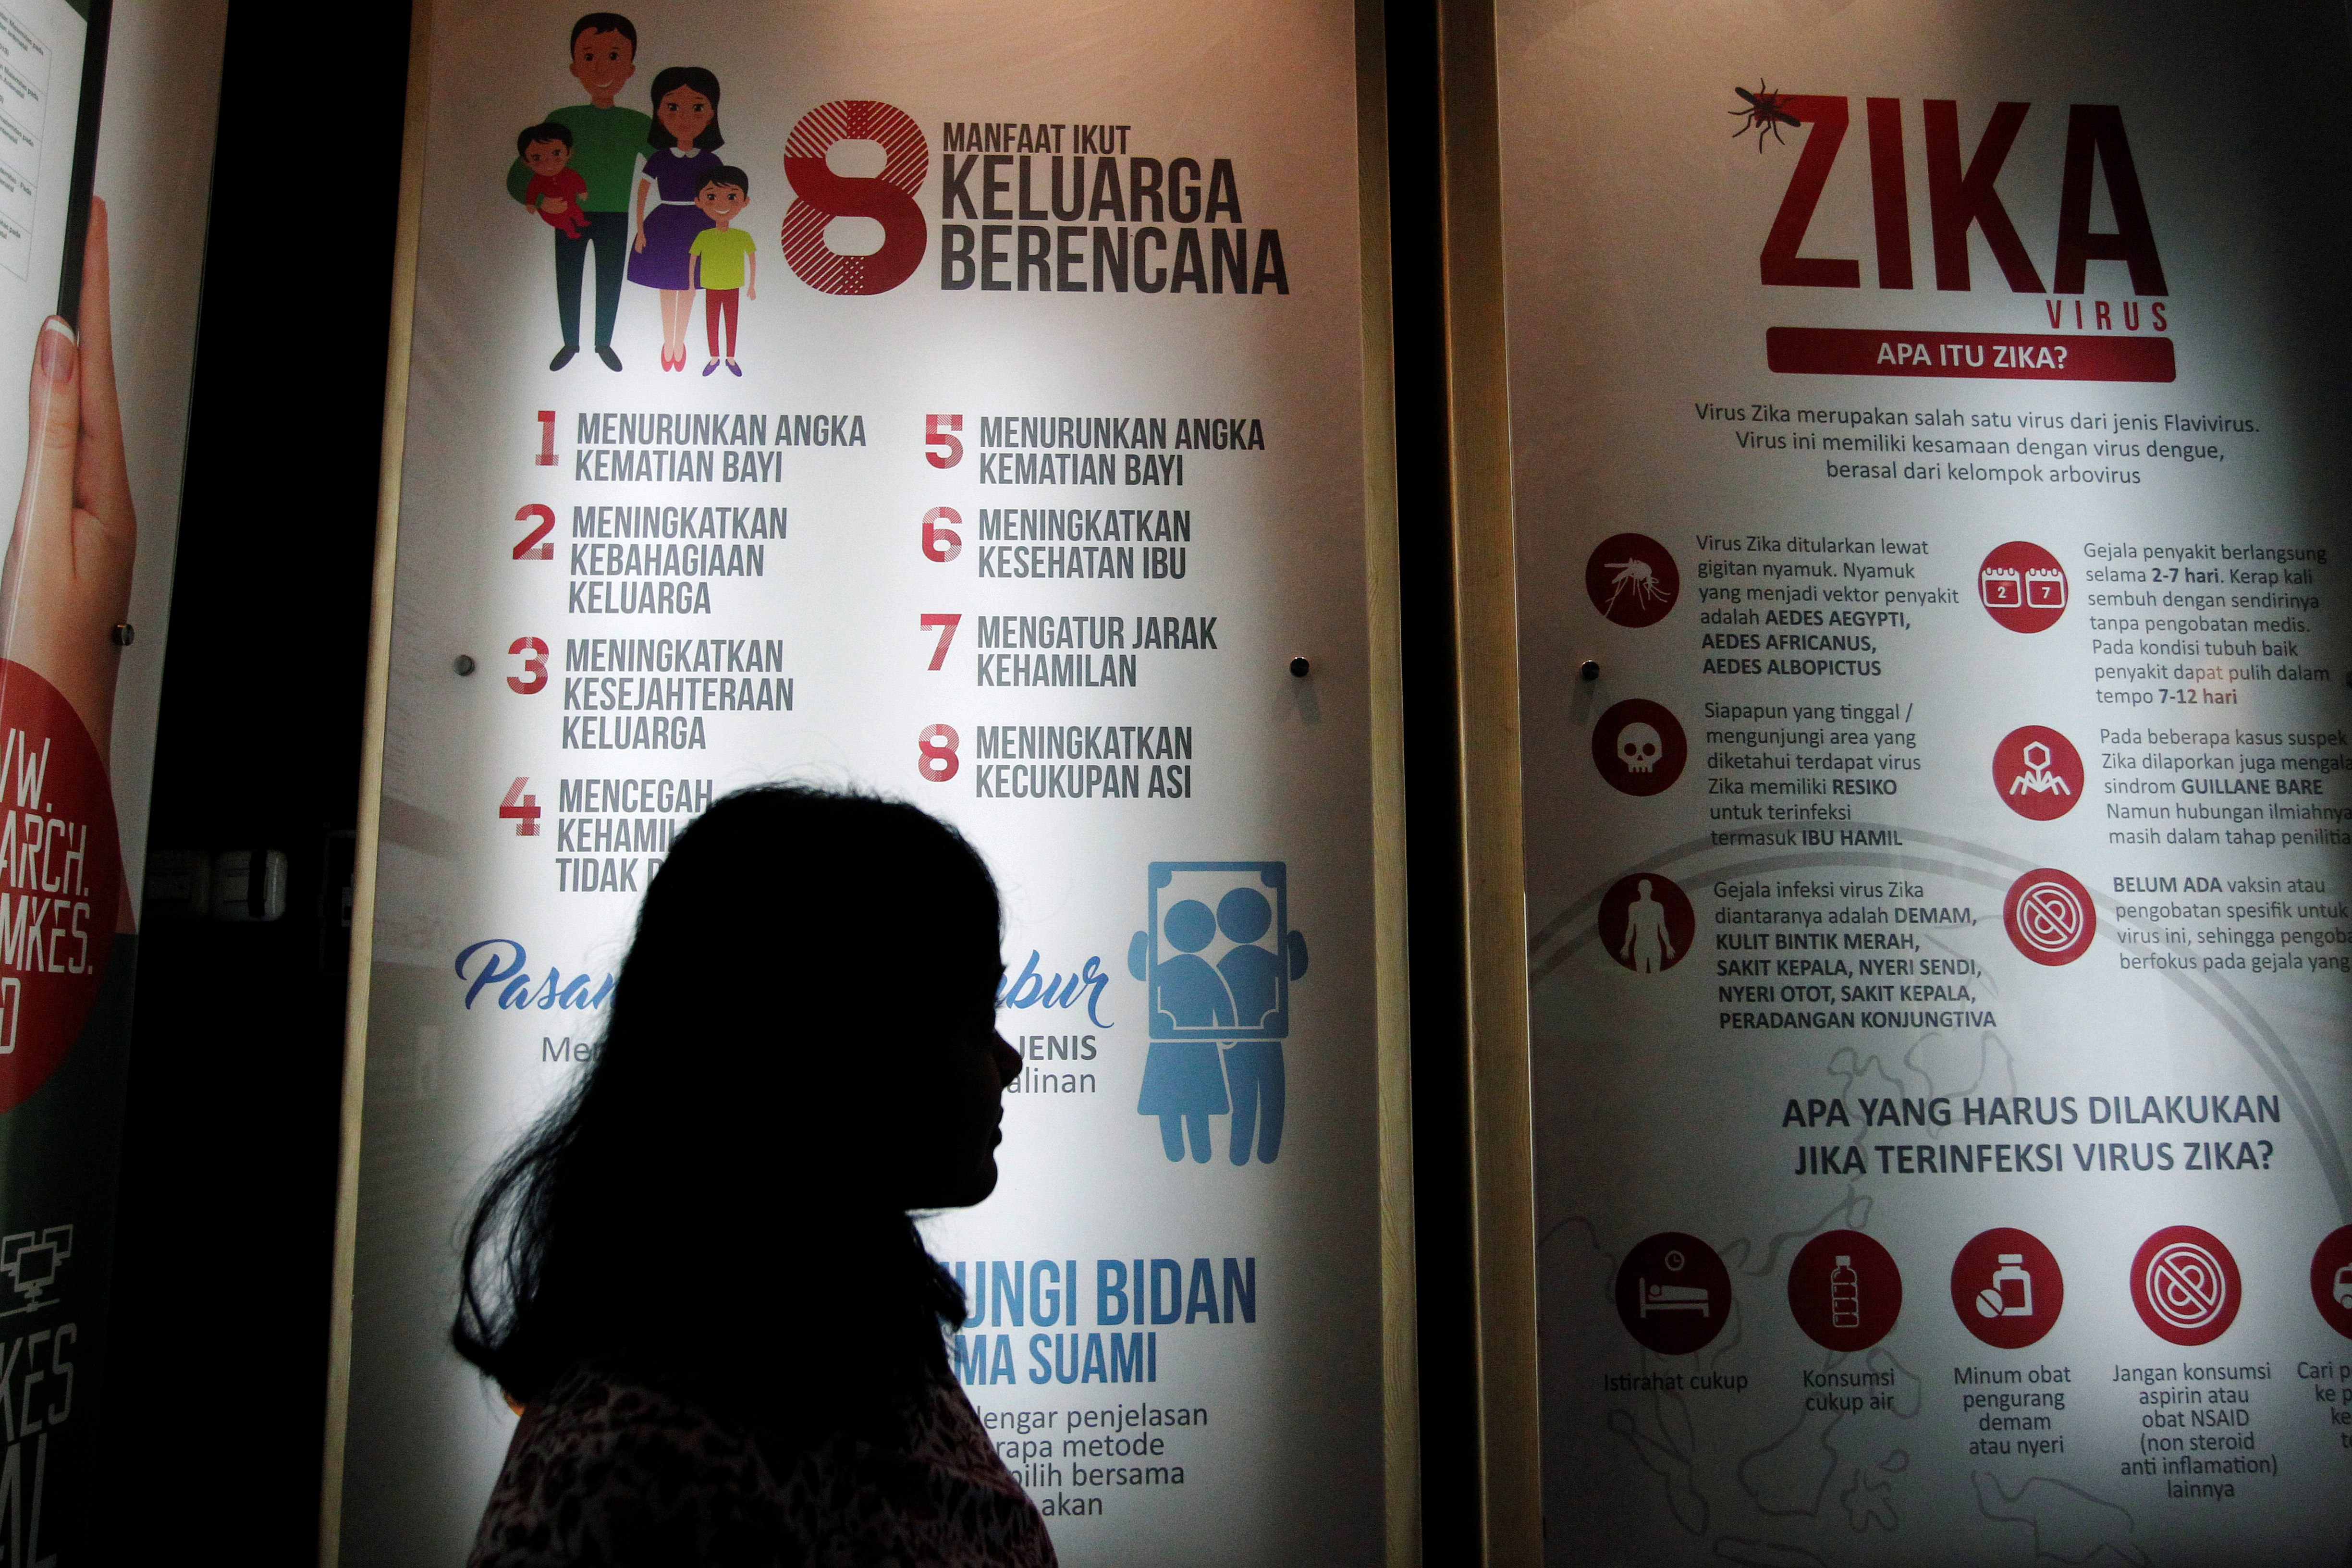 woman near Zika poster